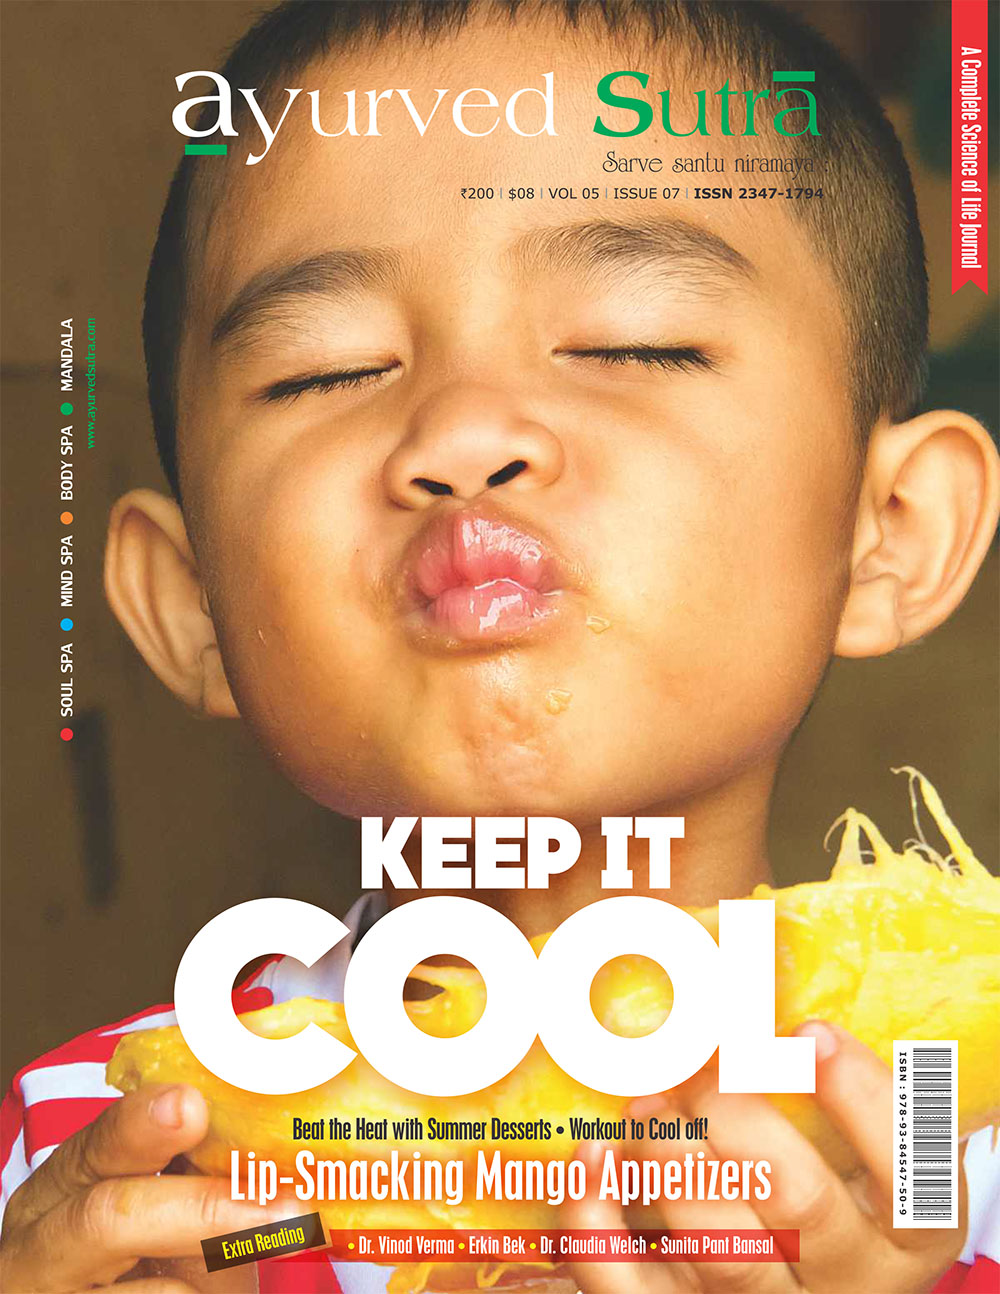 Ayurvedsutra Vol 05 issue 07 1 - Keep it Cool